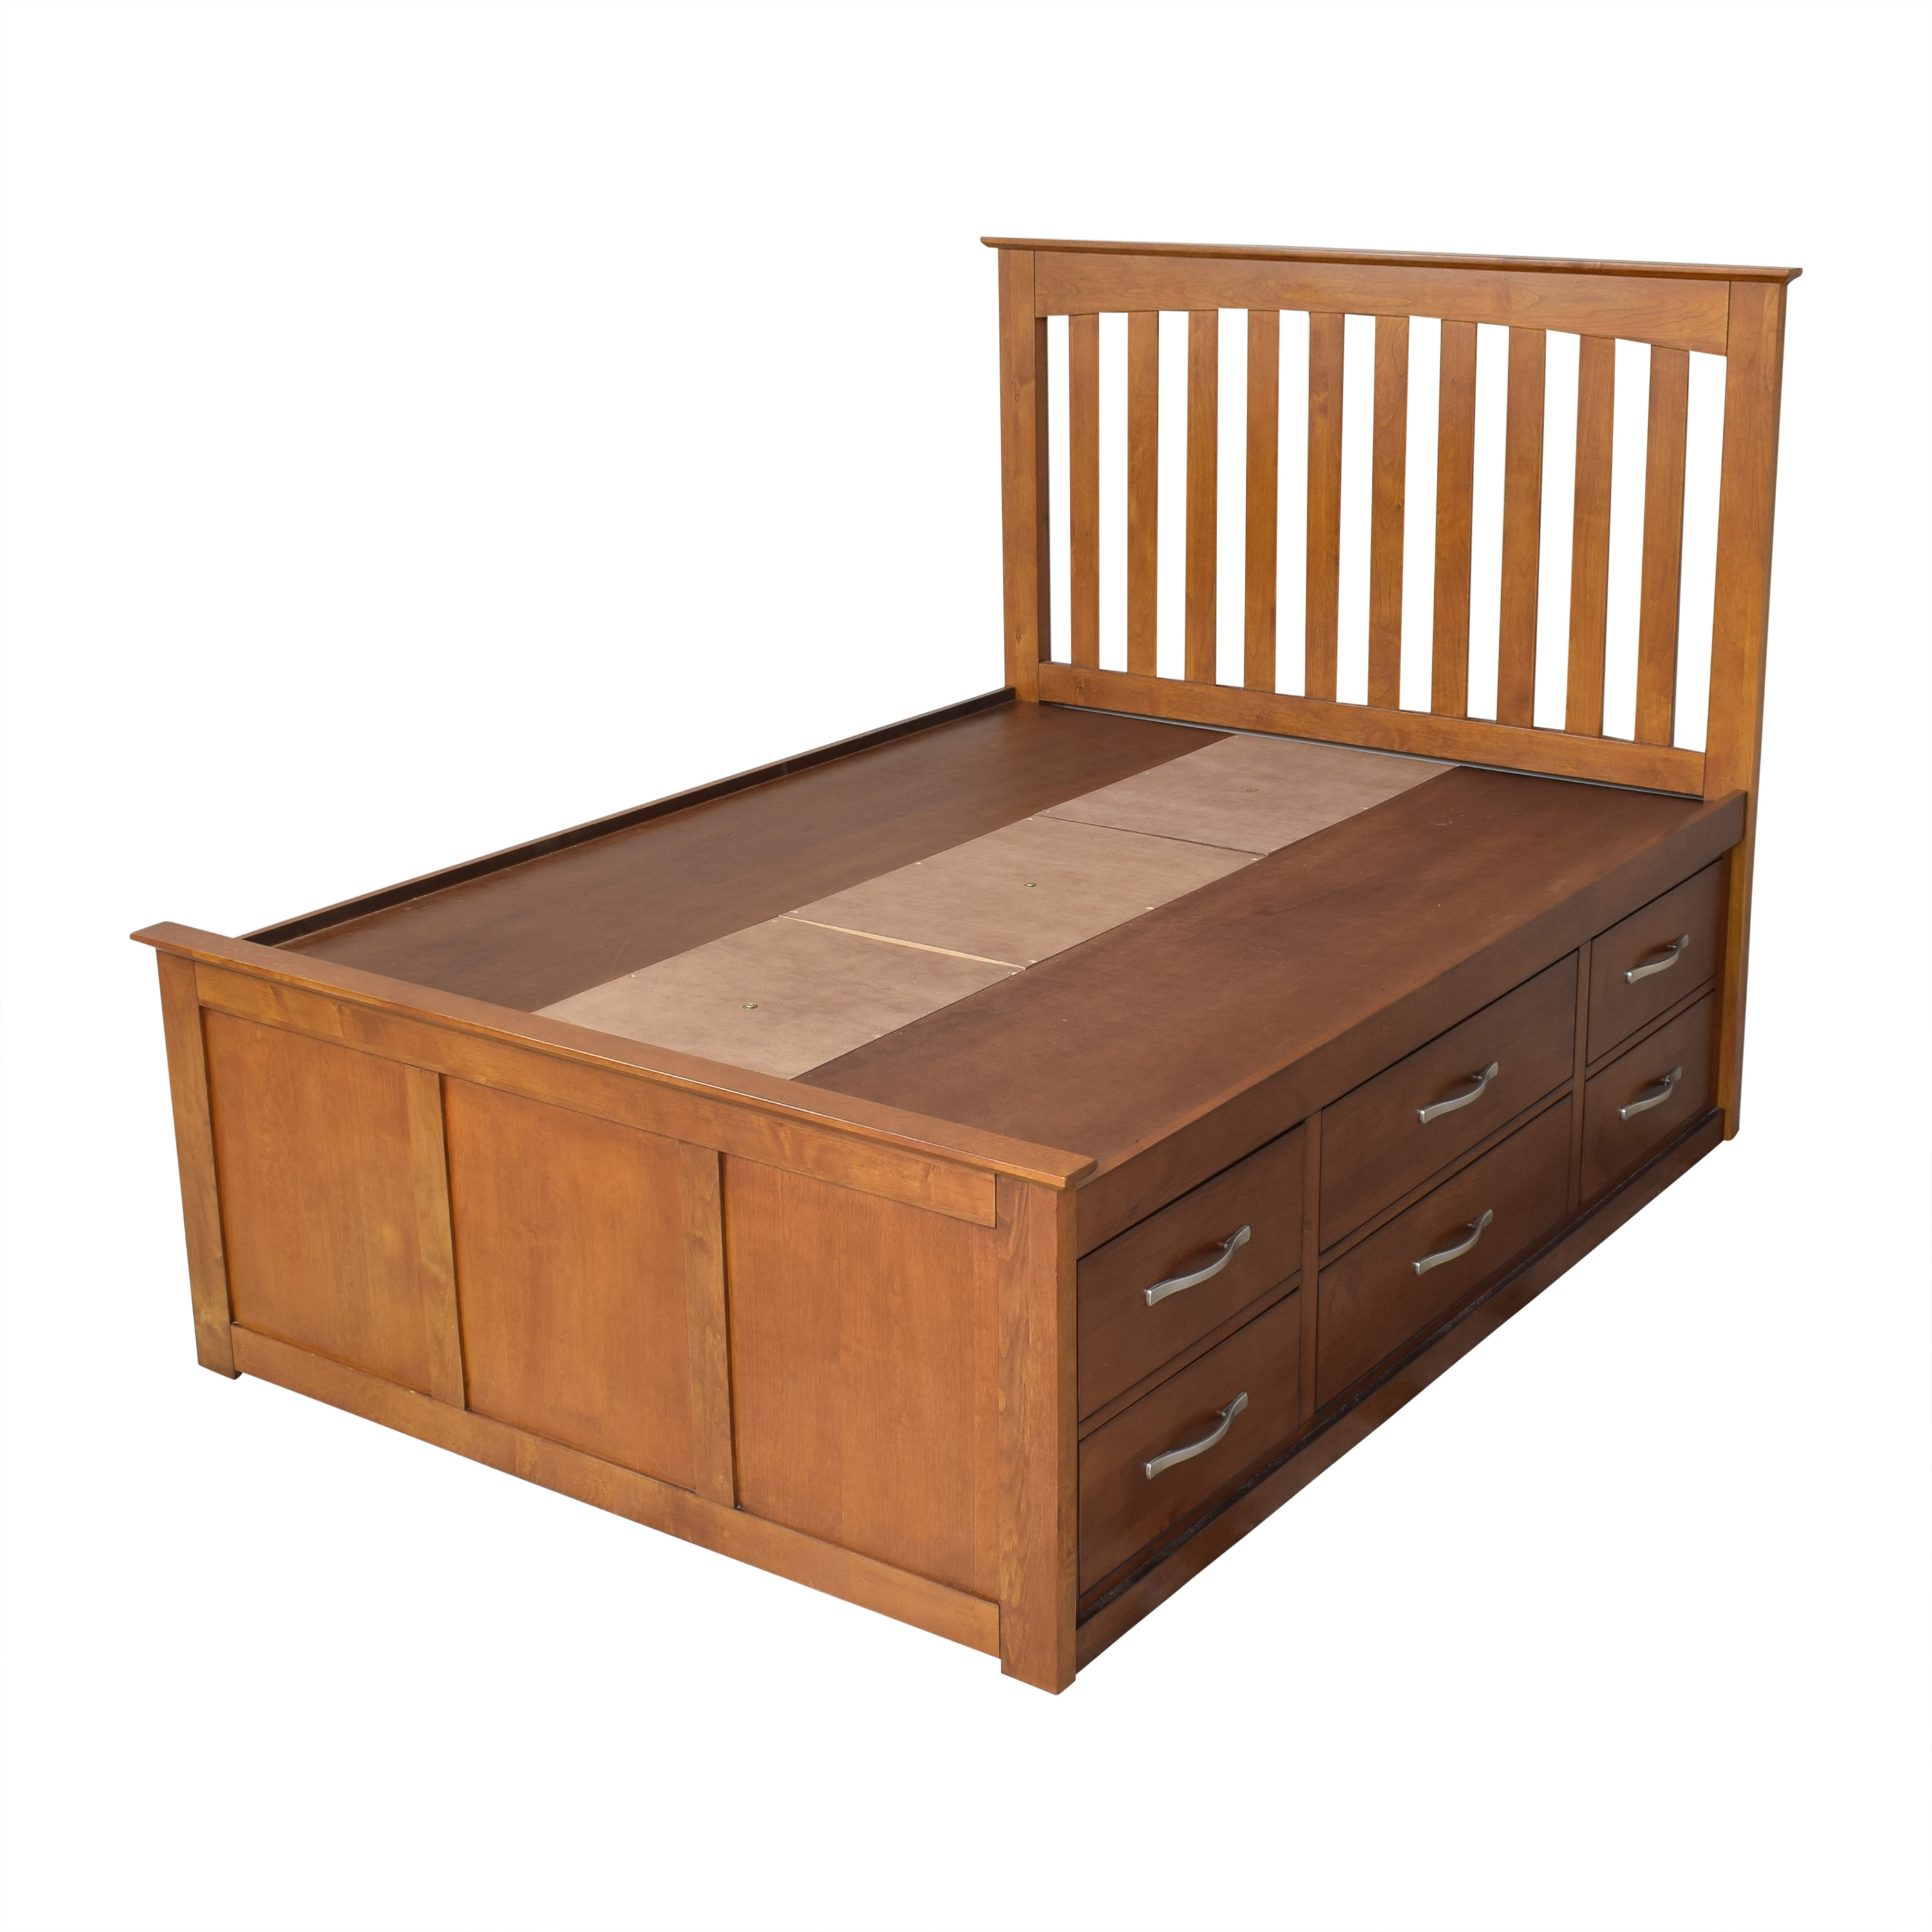 Raymour & Flanigan Raymour & Flanigan Captain's Full Bed second hand